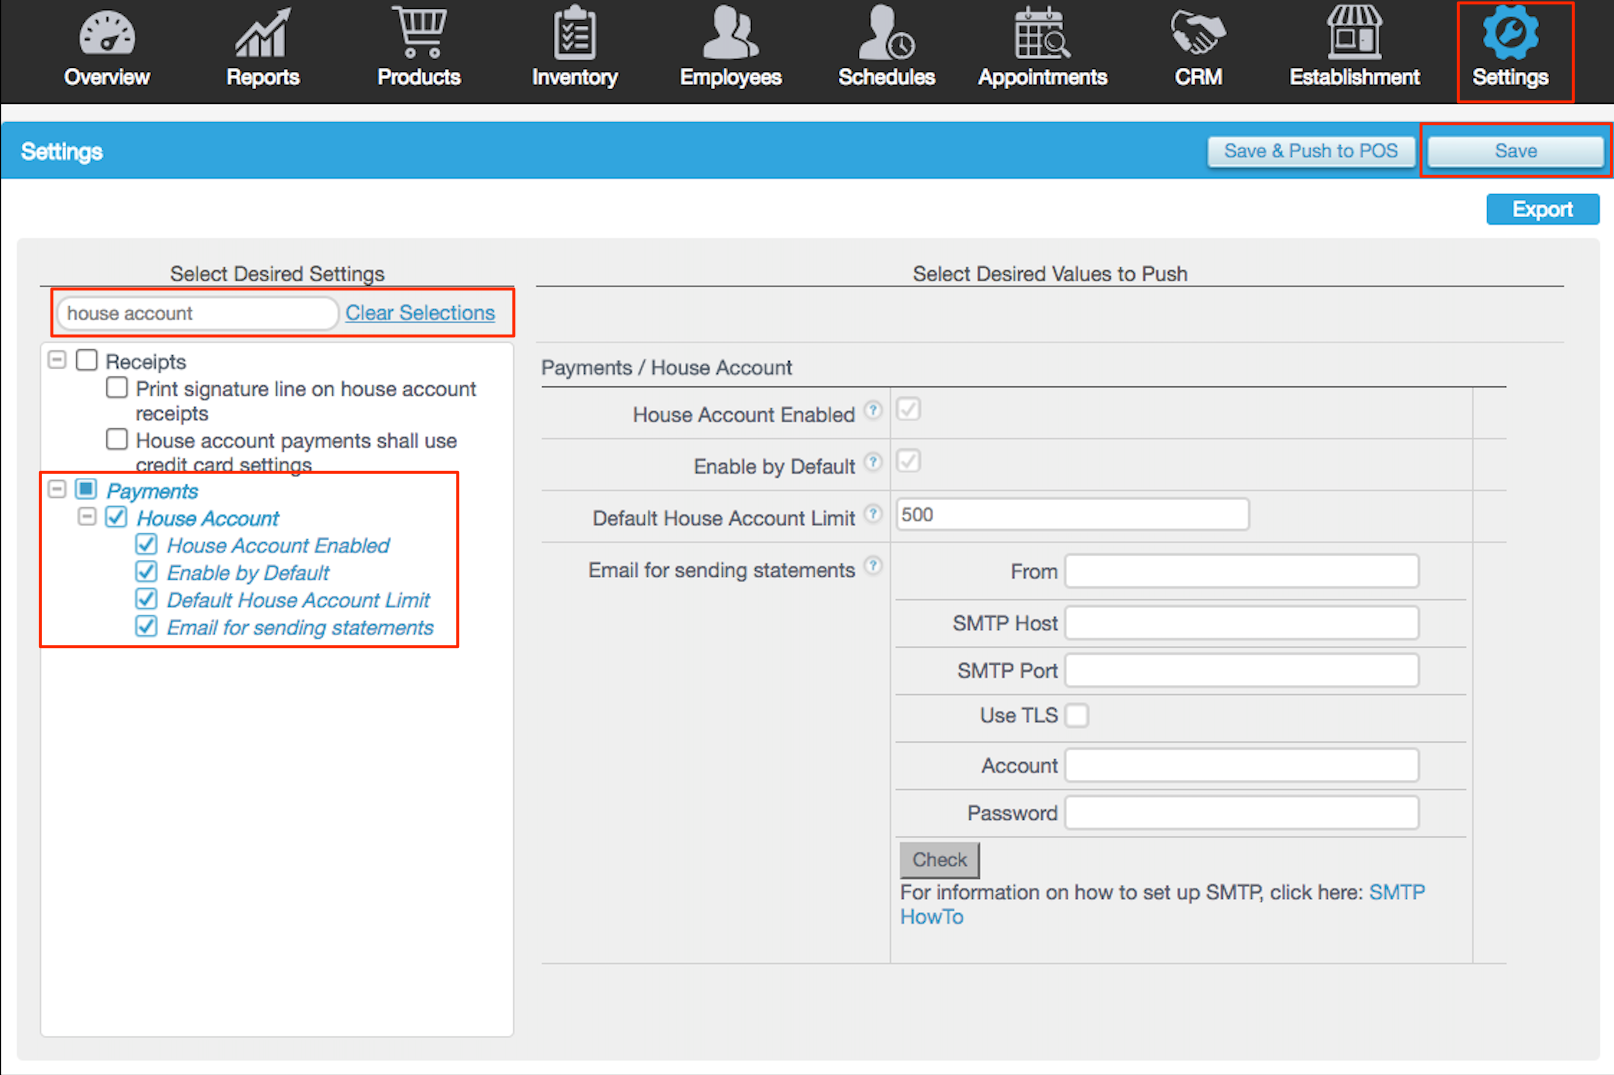 House Accounts Vs Invoices Revel Systems Help Site - What to say when sending an invoice via email